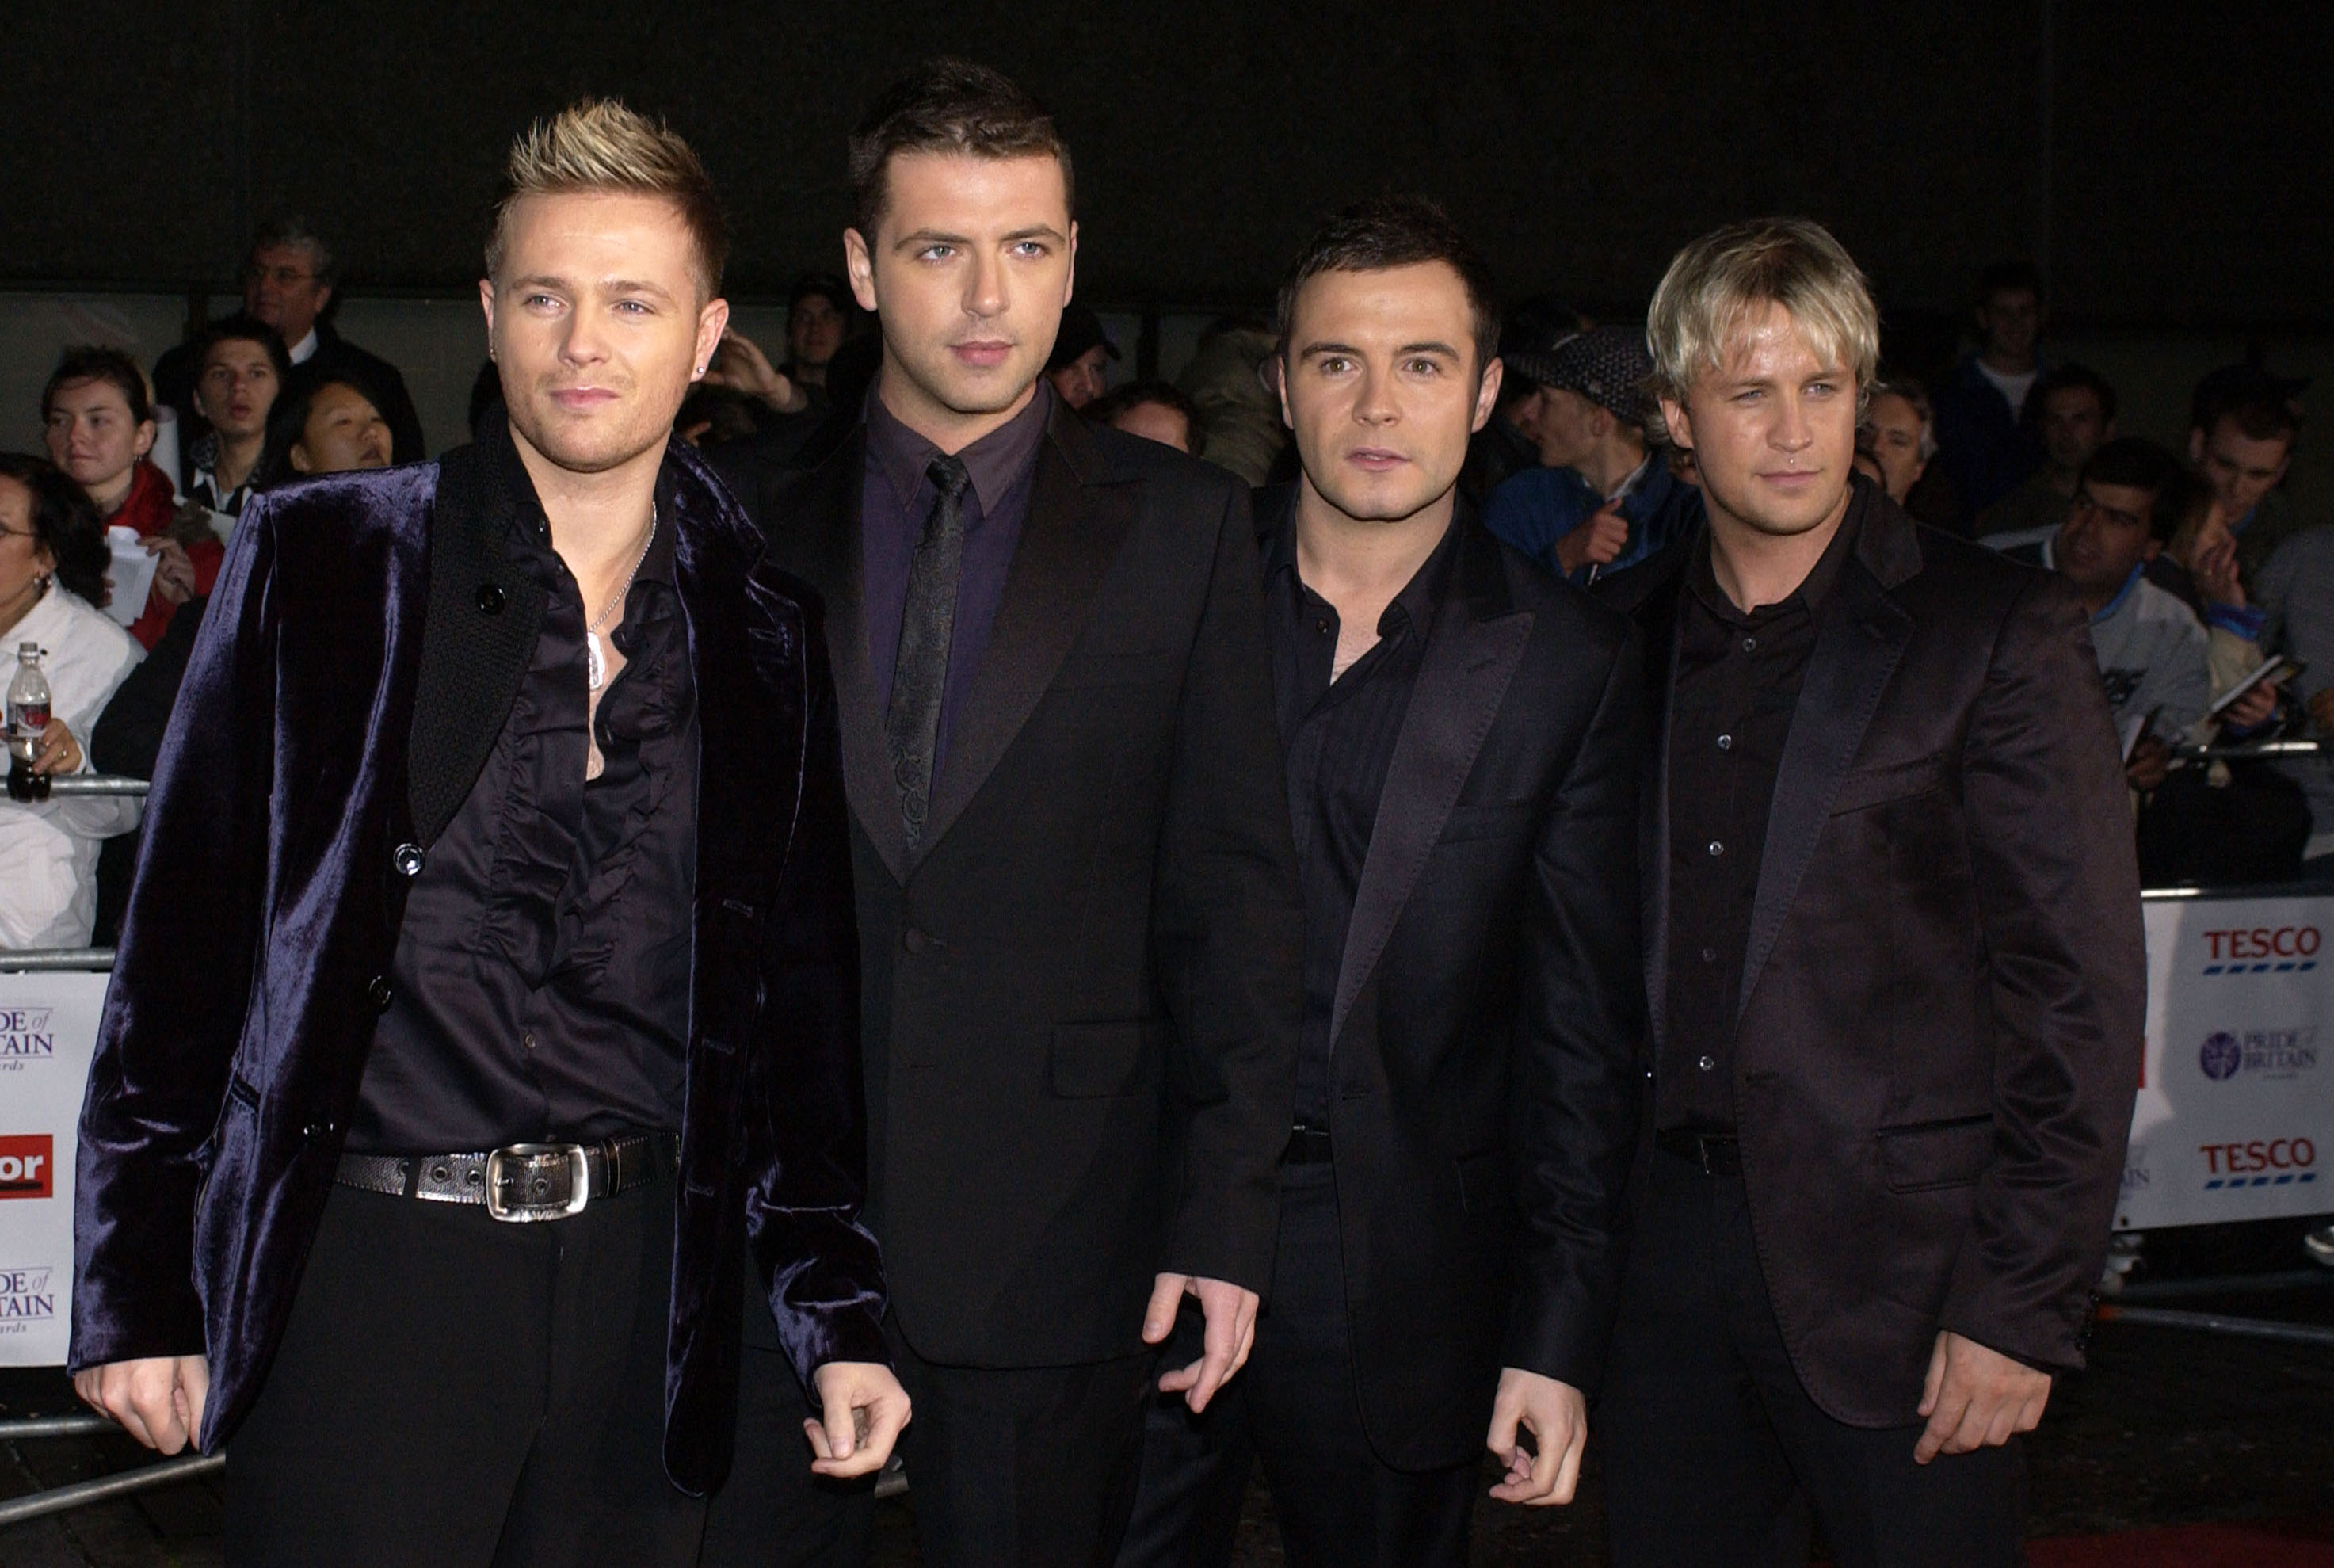 Westlife: There's no war with Spice Girls (VIDEO)